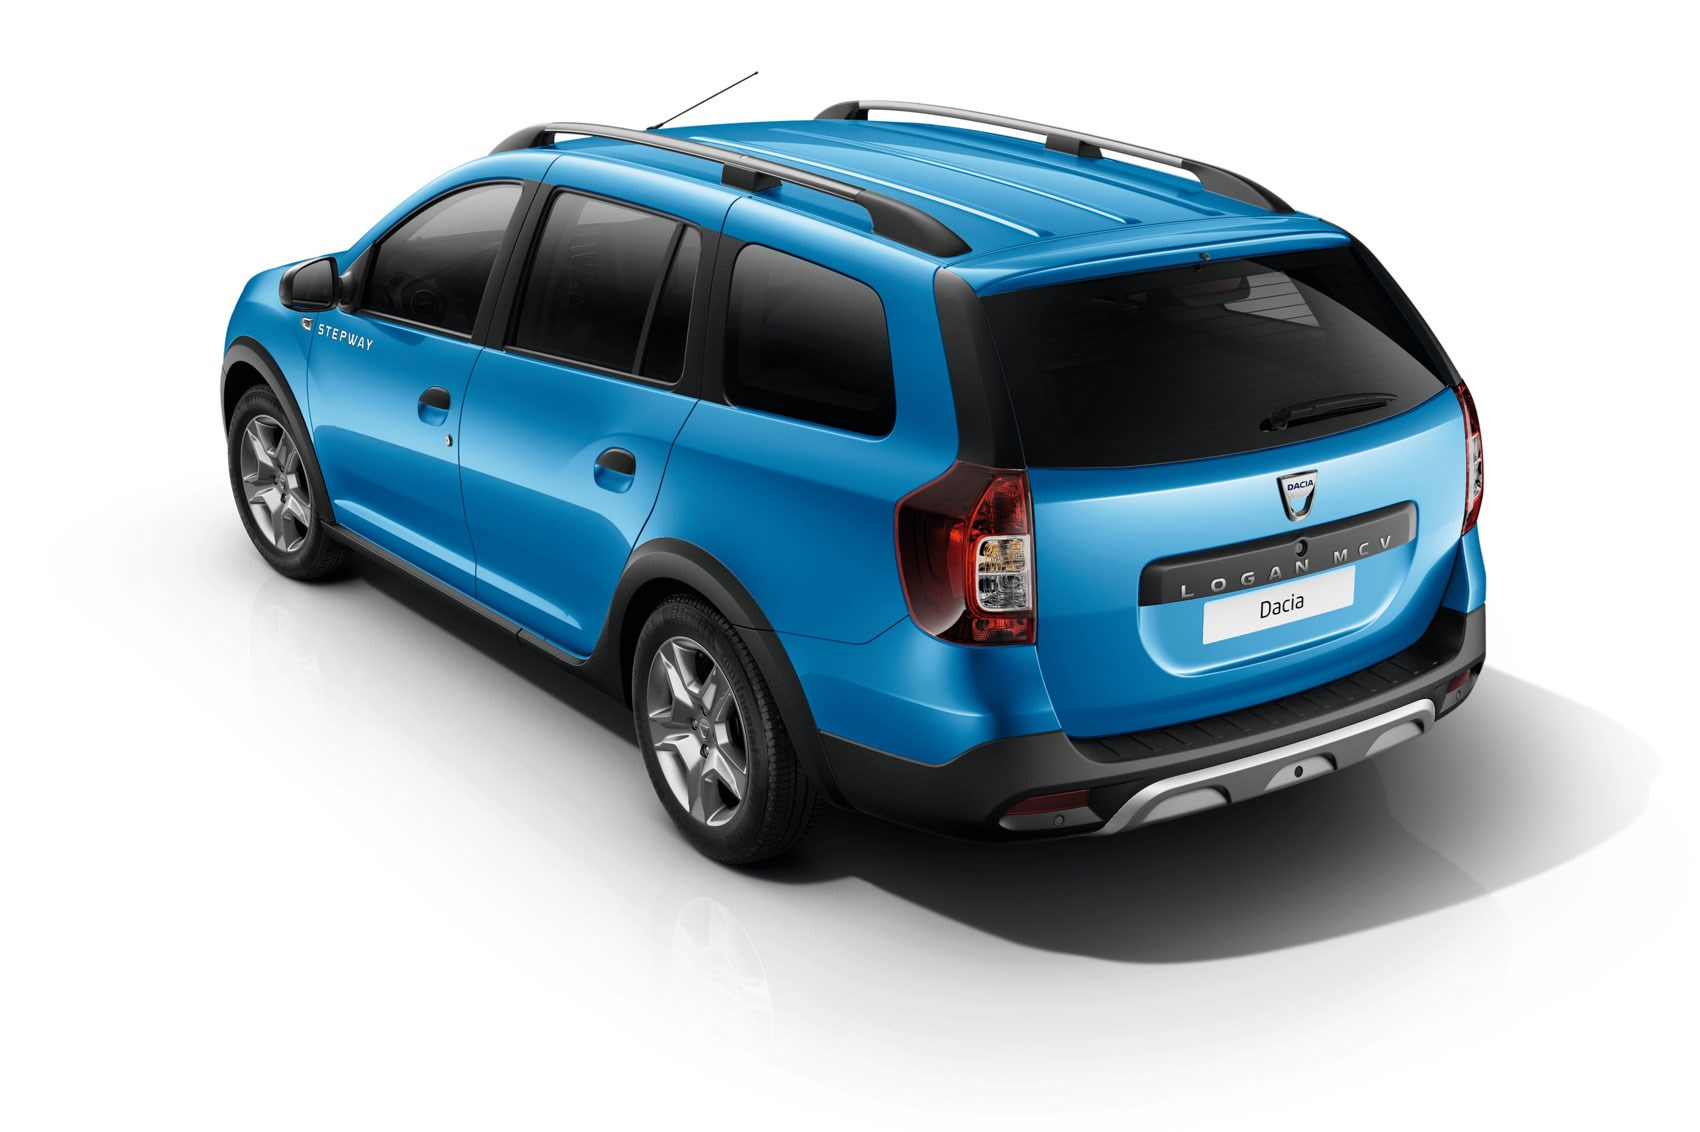 now with added chunk dacia lifts lid on logan mcv stepway by car magazine. Black Bedroom Furniture Sets. Home Design Ideas